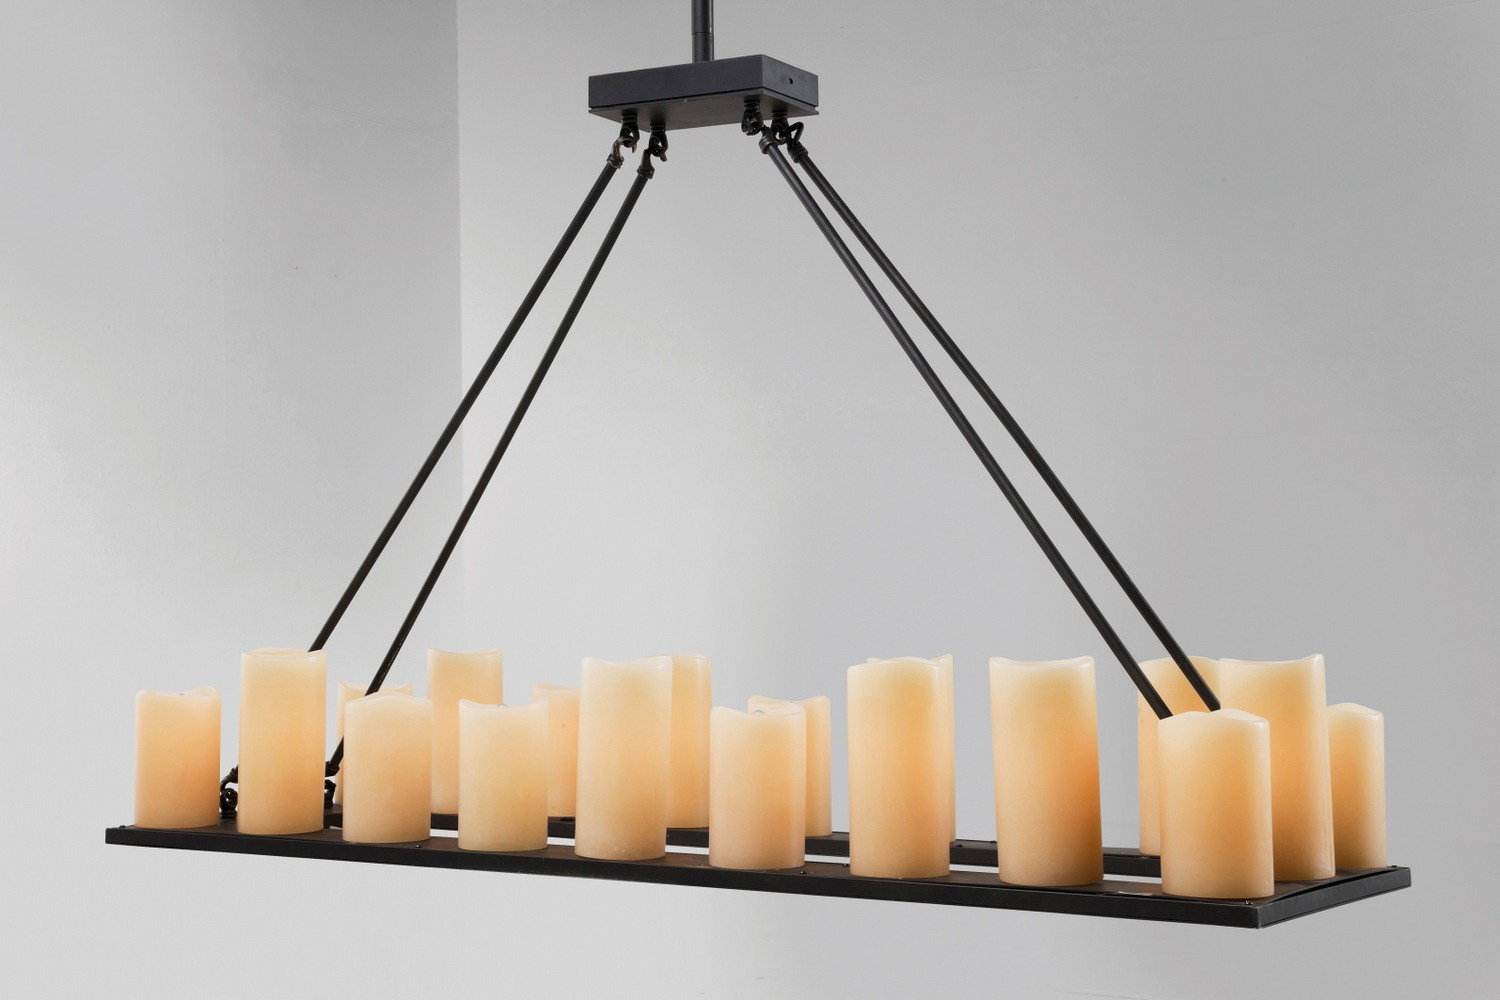 Led Pendant Lamp Candle Light 20 Lite By Kare Design